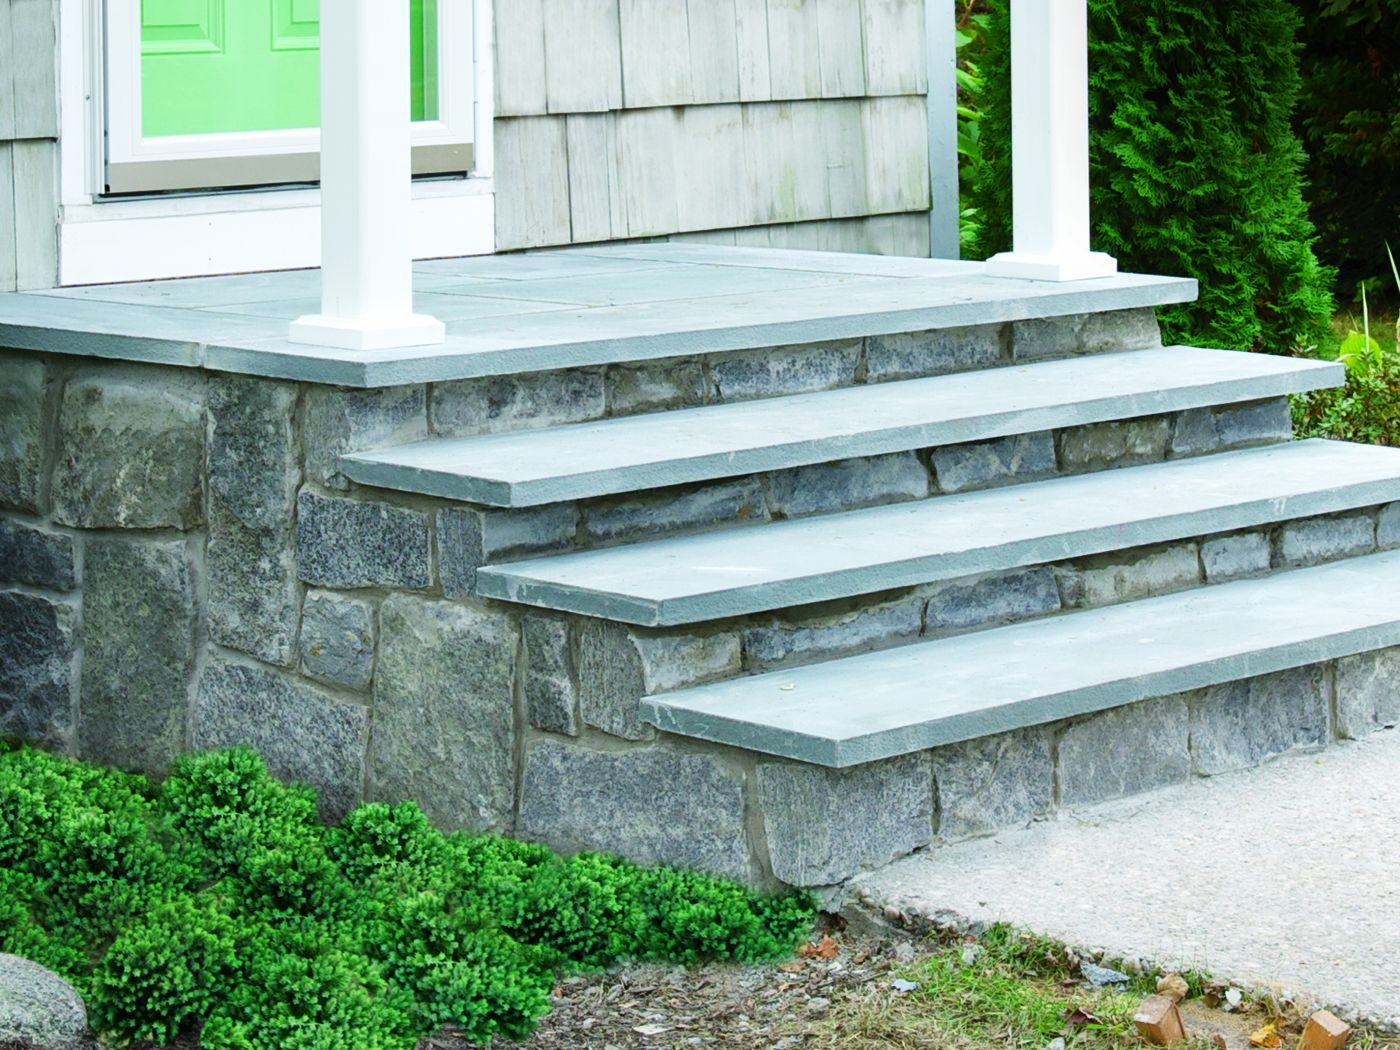 How To Clad Concrete Steps In Stone This Old House   Painting Outdoor Concrete Steps   Behr Premium   Epoxy   Front Porch   Deck   Slip Resistant